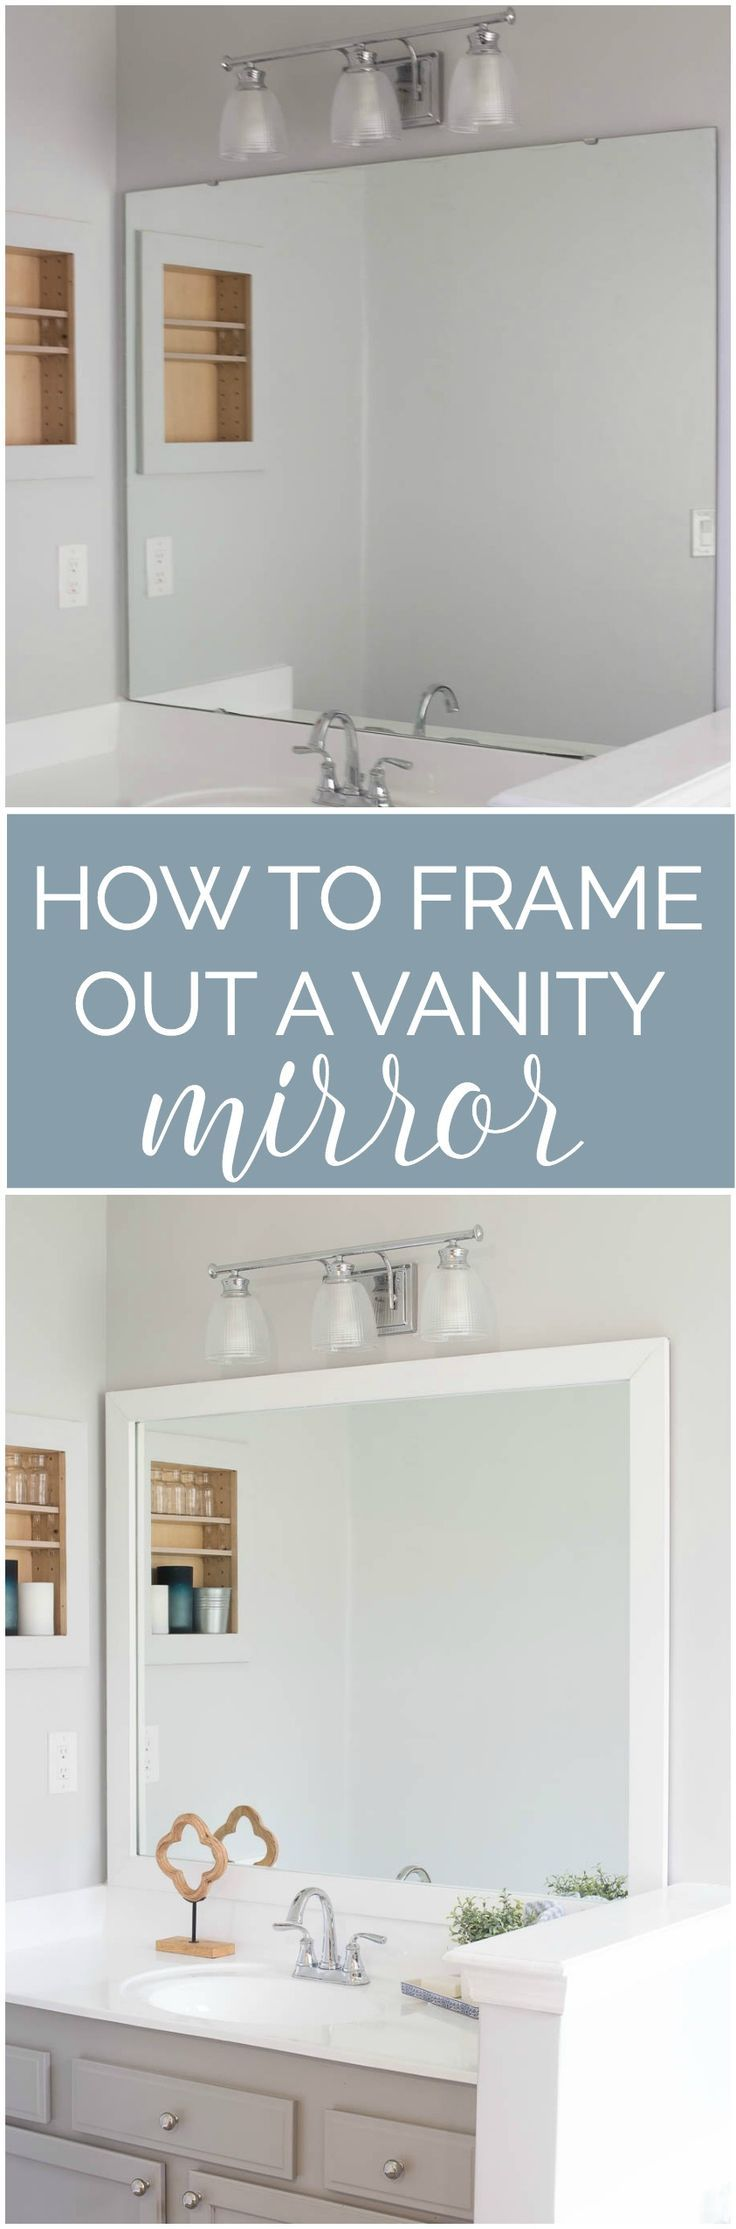 Inspiration Web Design How to Frame a Bathroom Mirror Easy DIY project